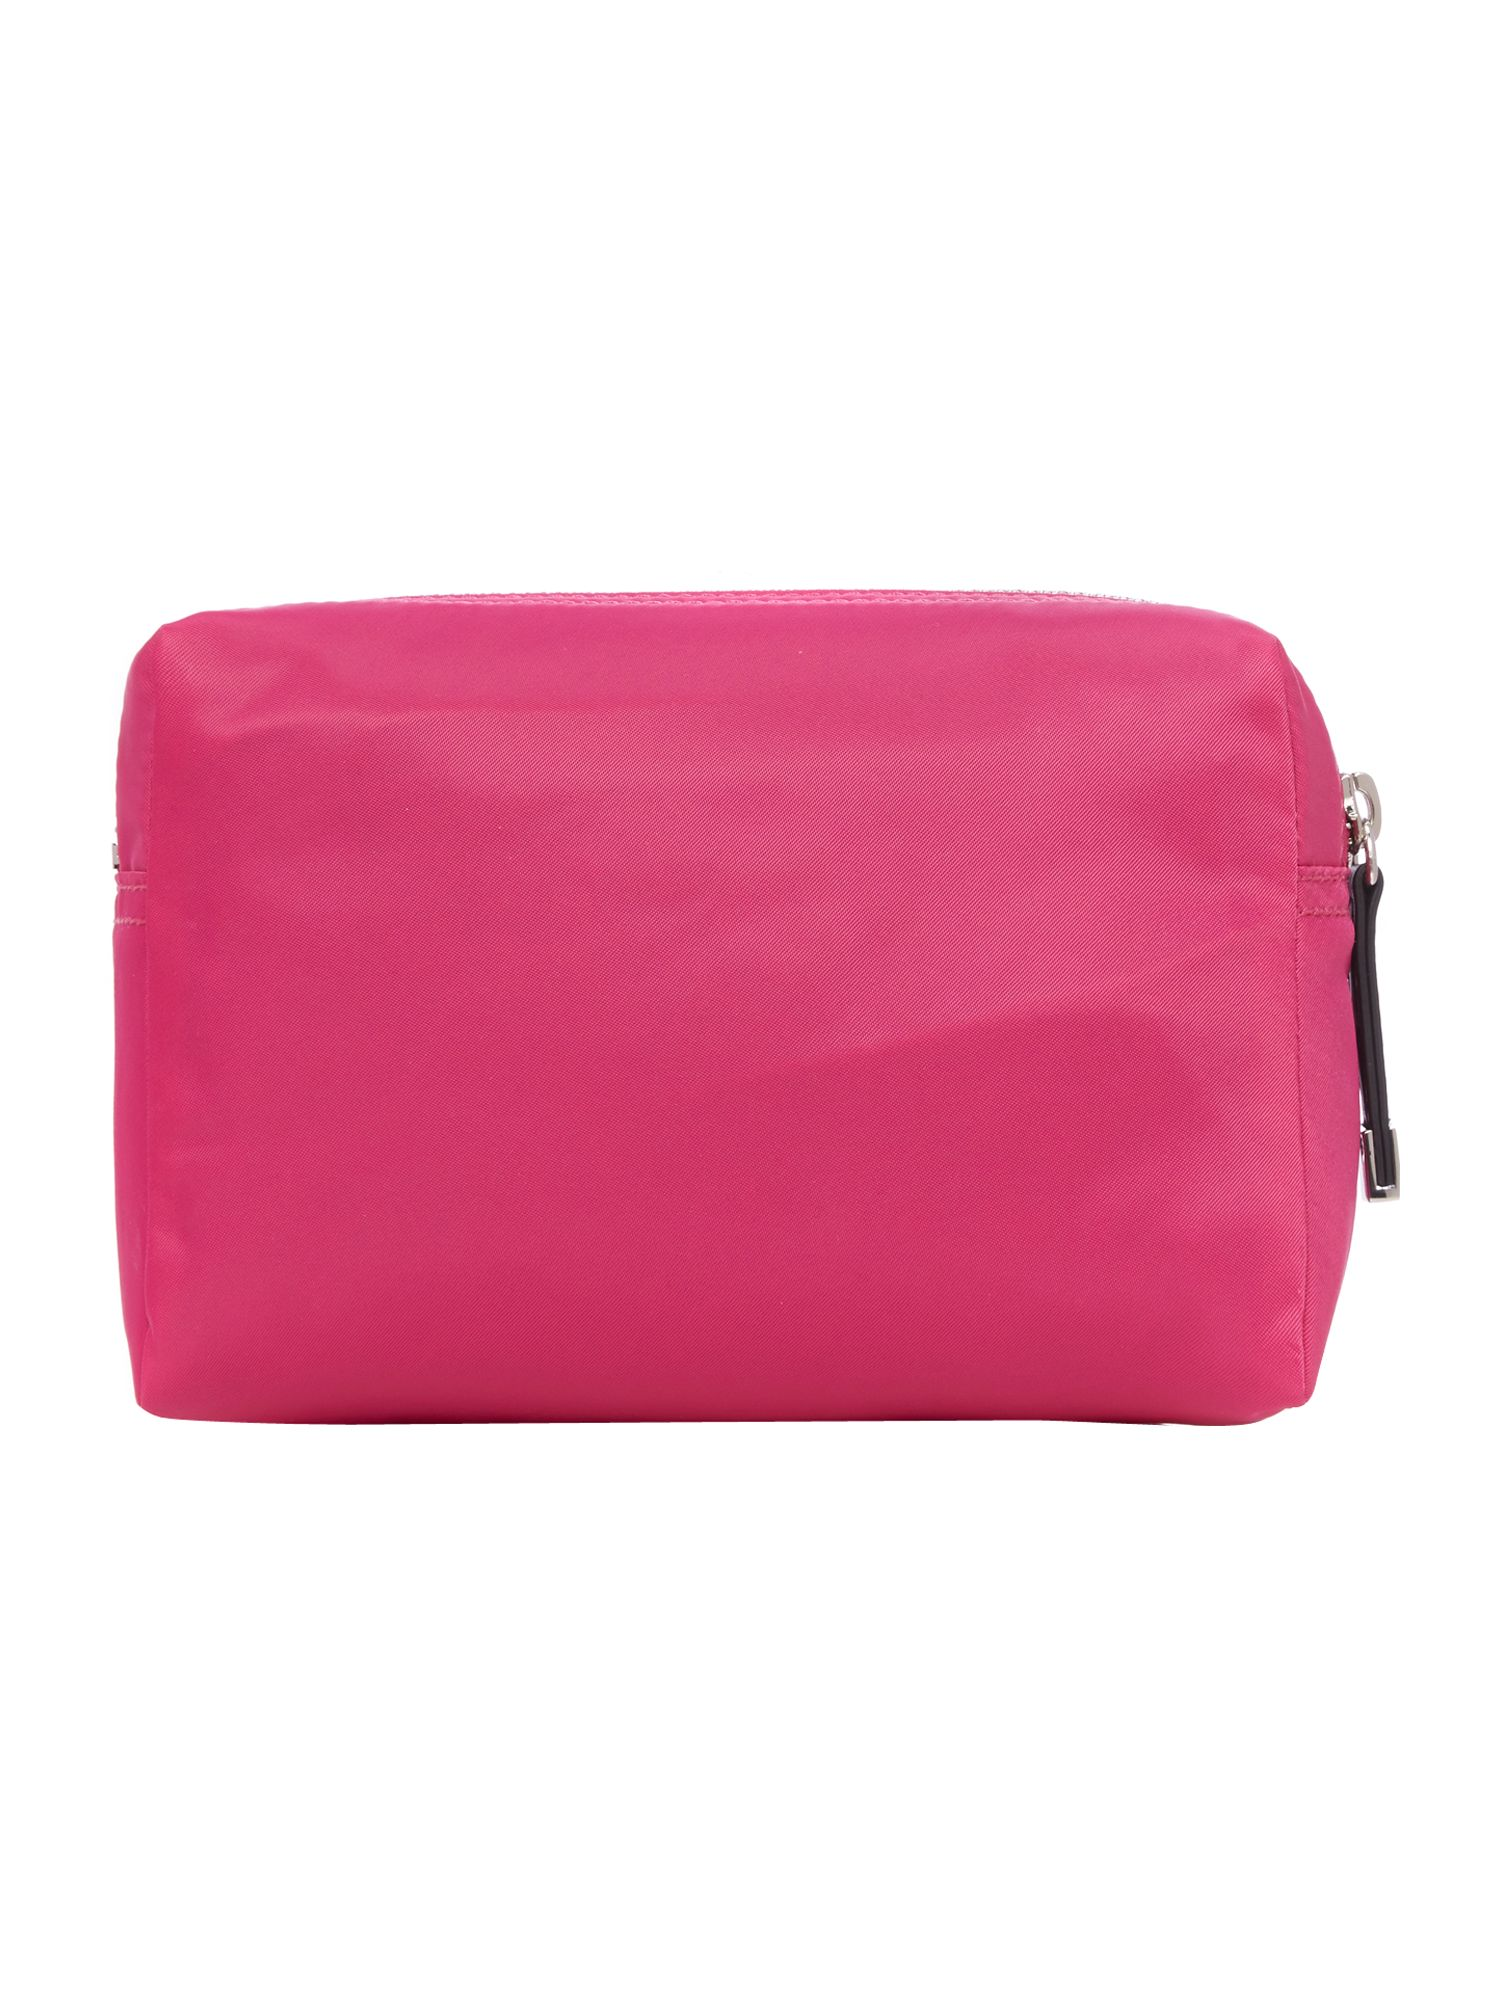 Pink medium cosmetic case